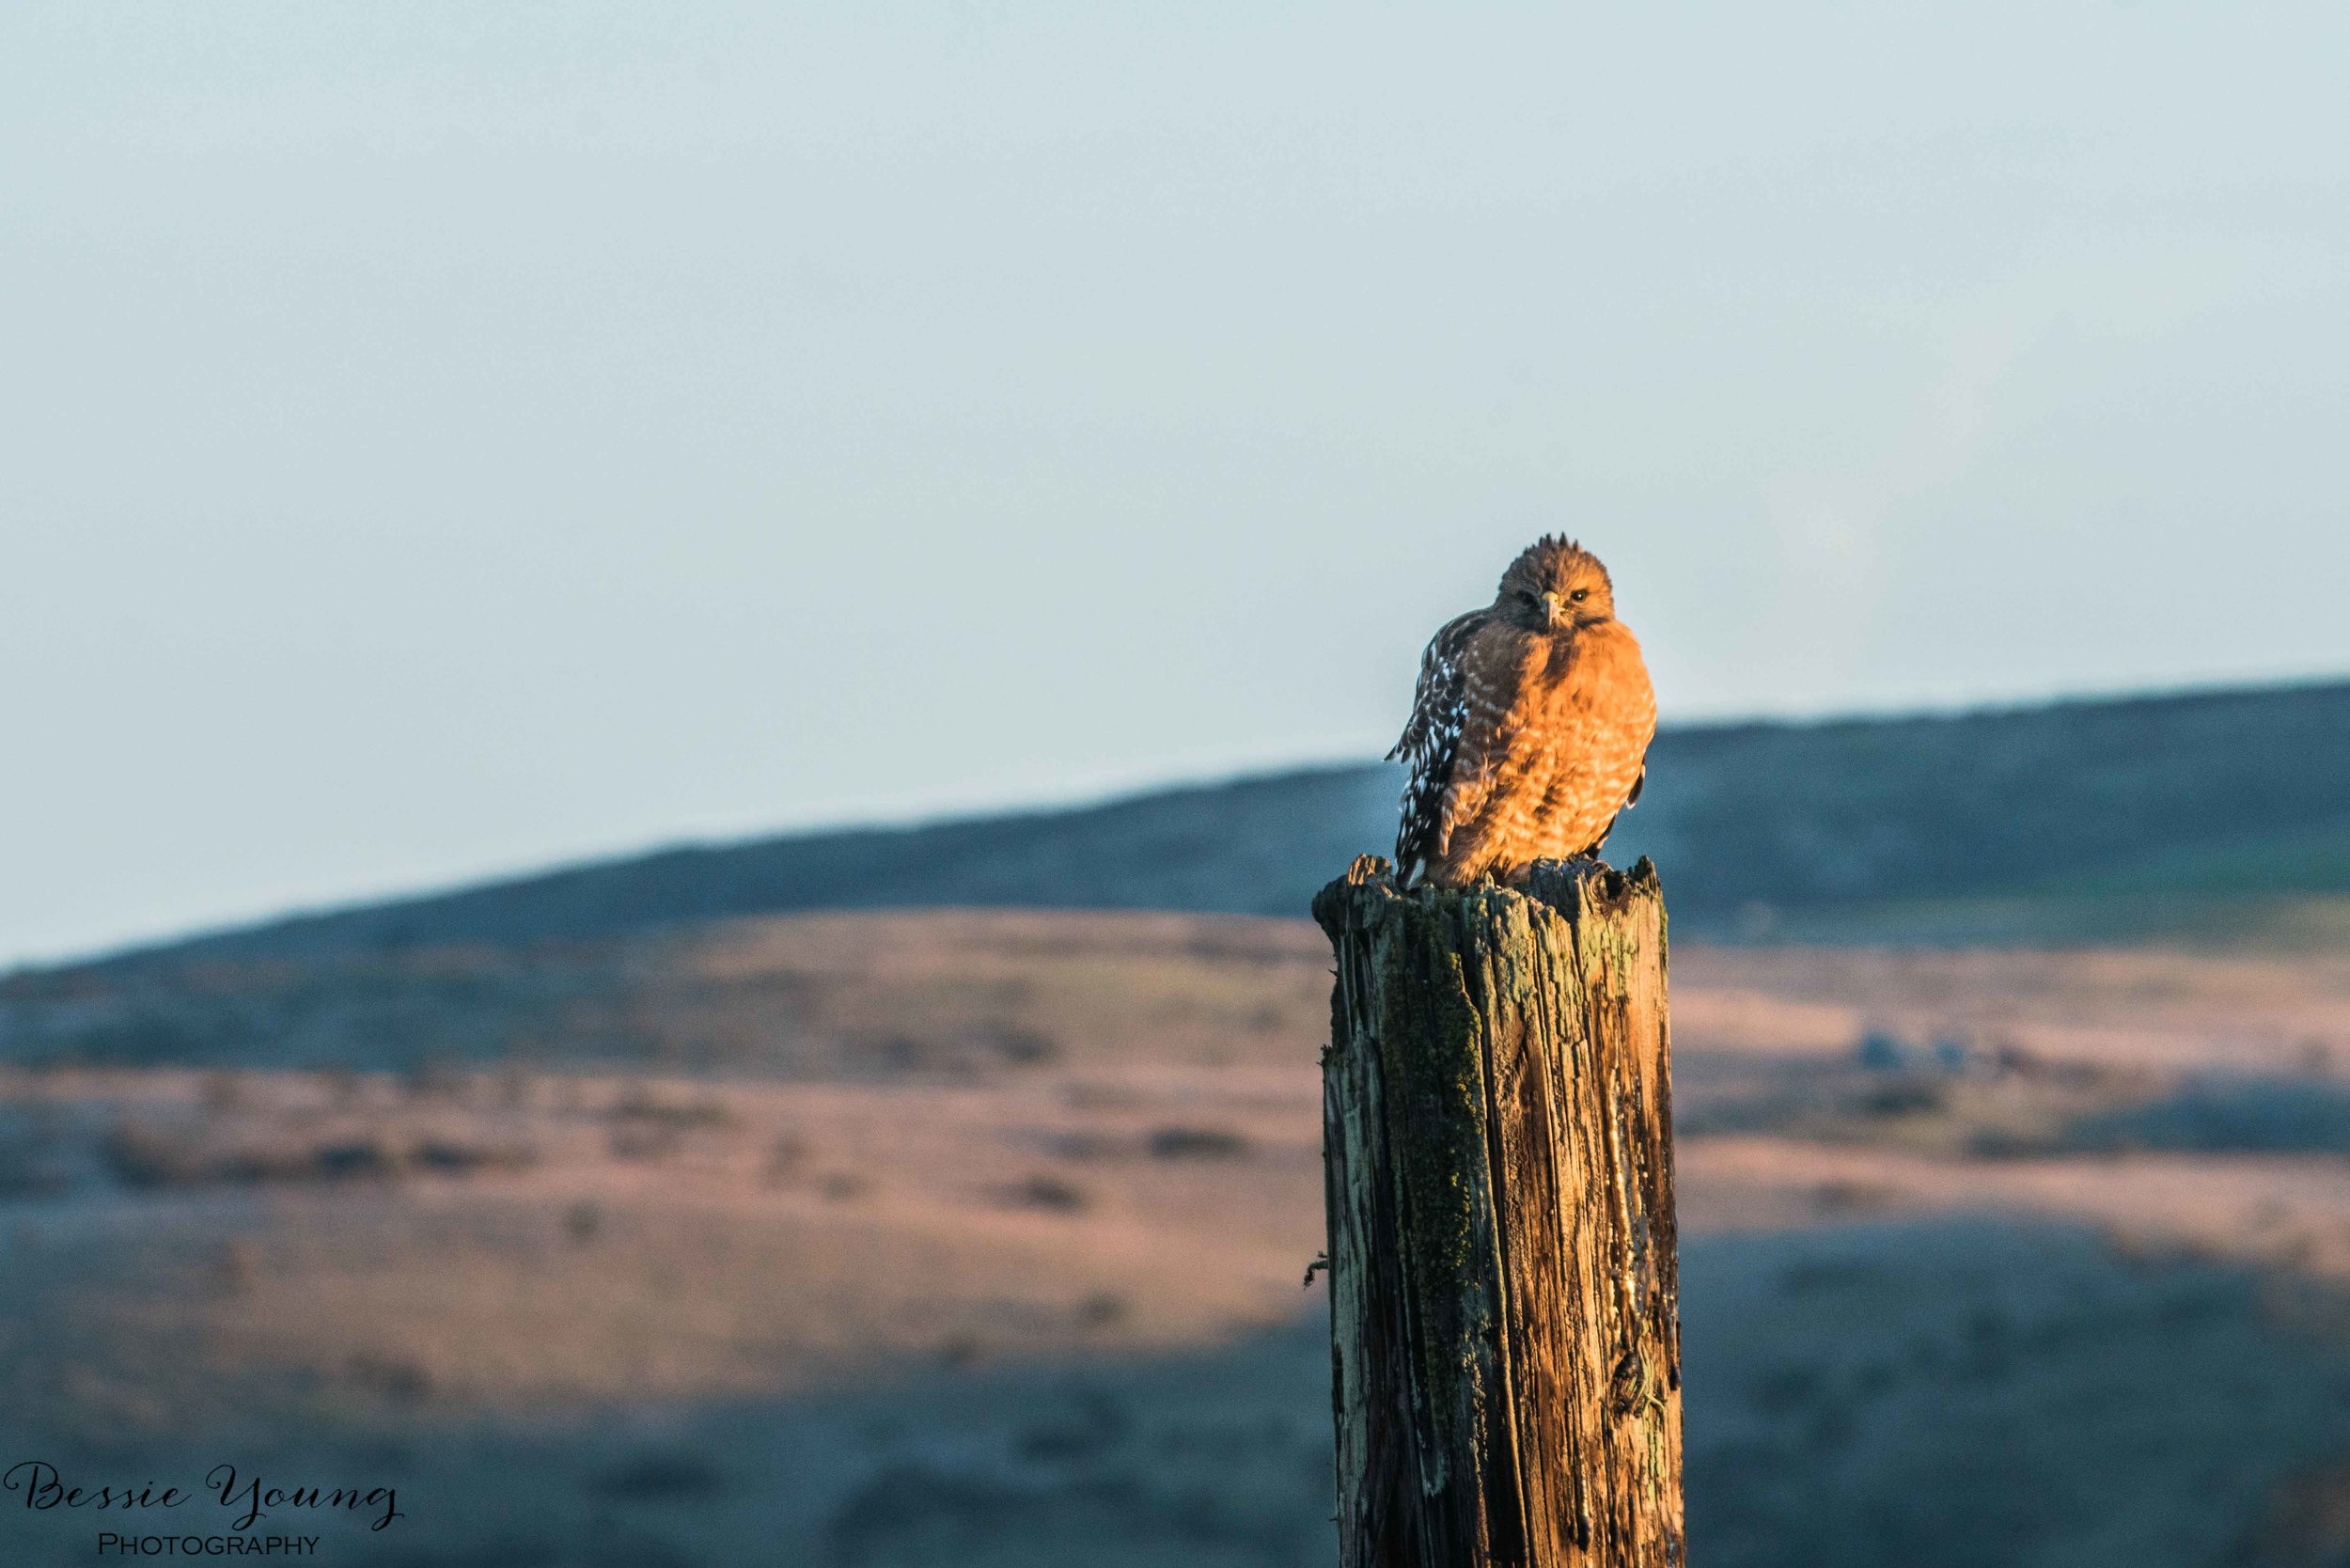 Point Reyes National Seashore 2016 - Bessie Young Photography-11.jpg